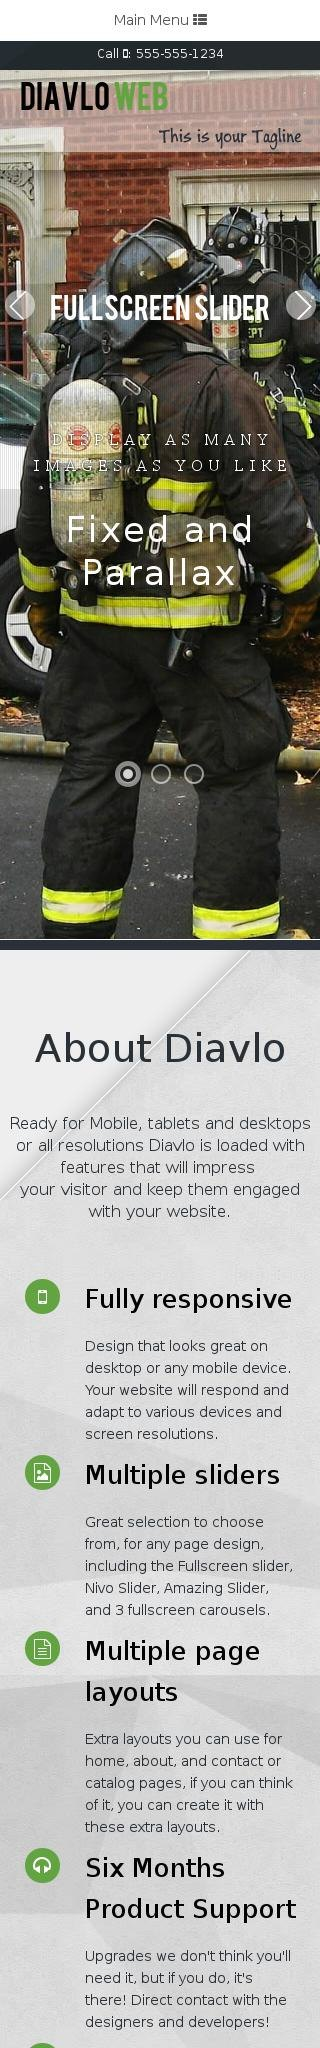 Mobile: Firefight Dreamweaver Template